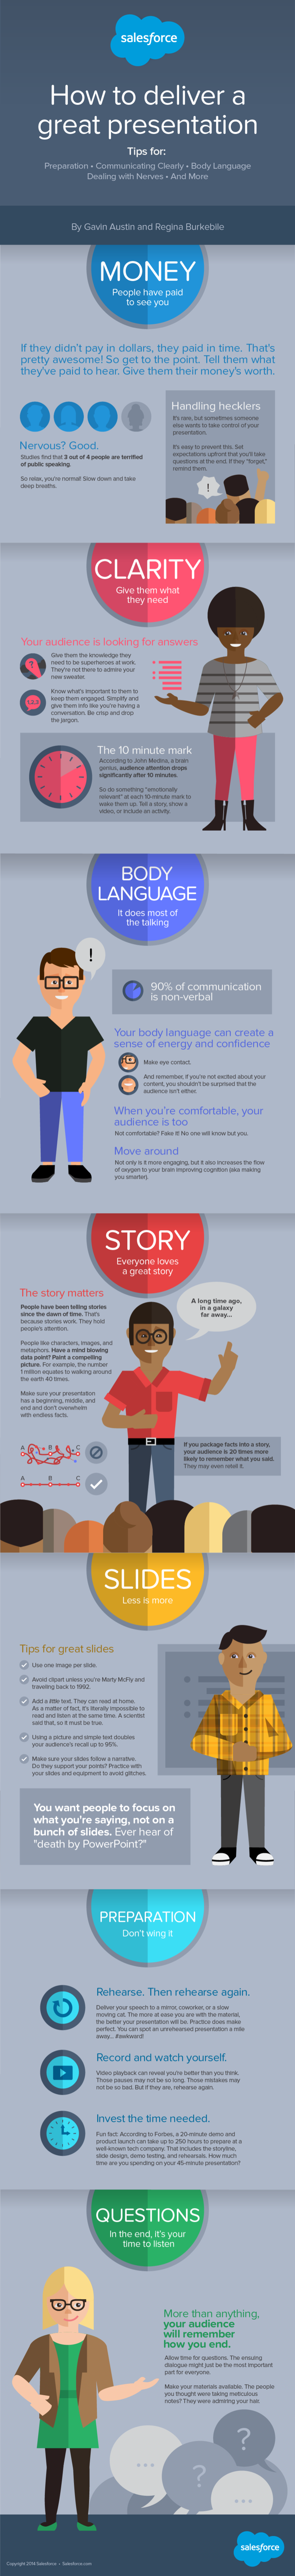 How to Deliver a Great Presentation at Dreamforce? [Infographic]